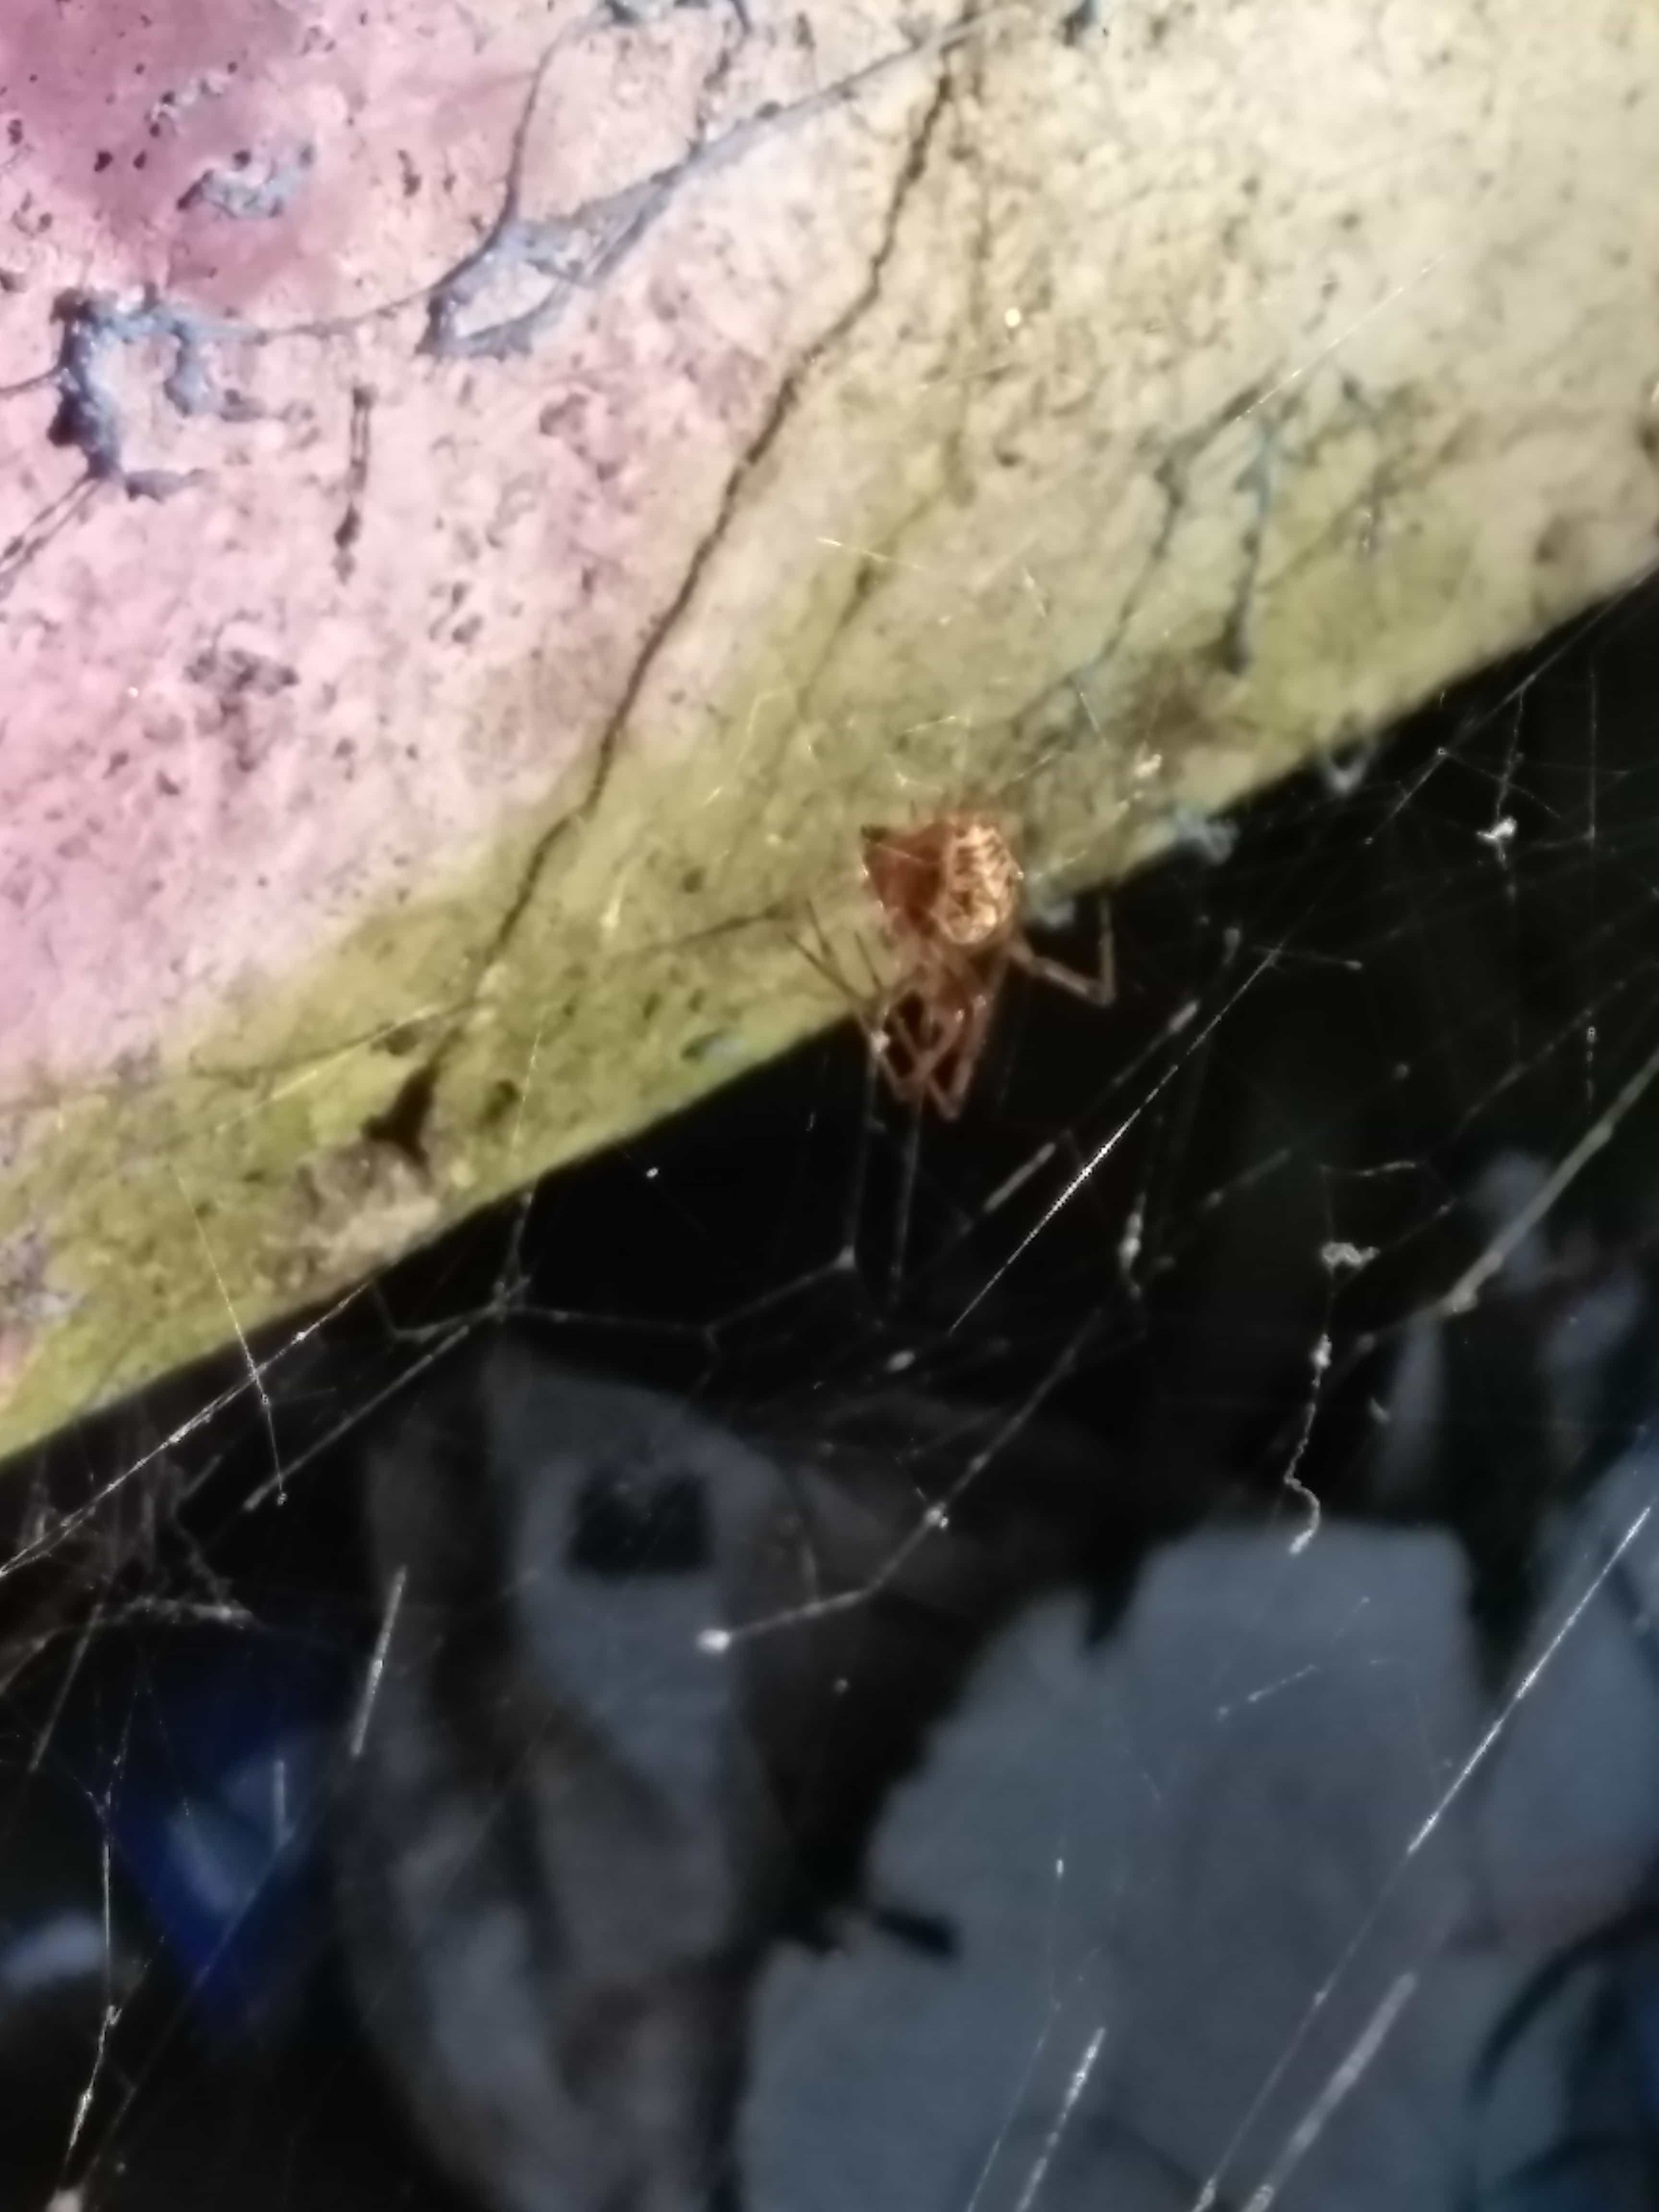 Picture of Parasteatoda - Webs